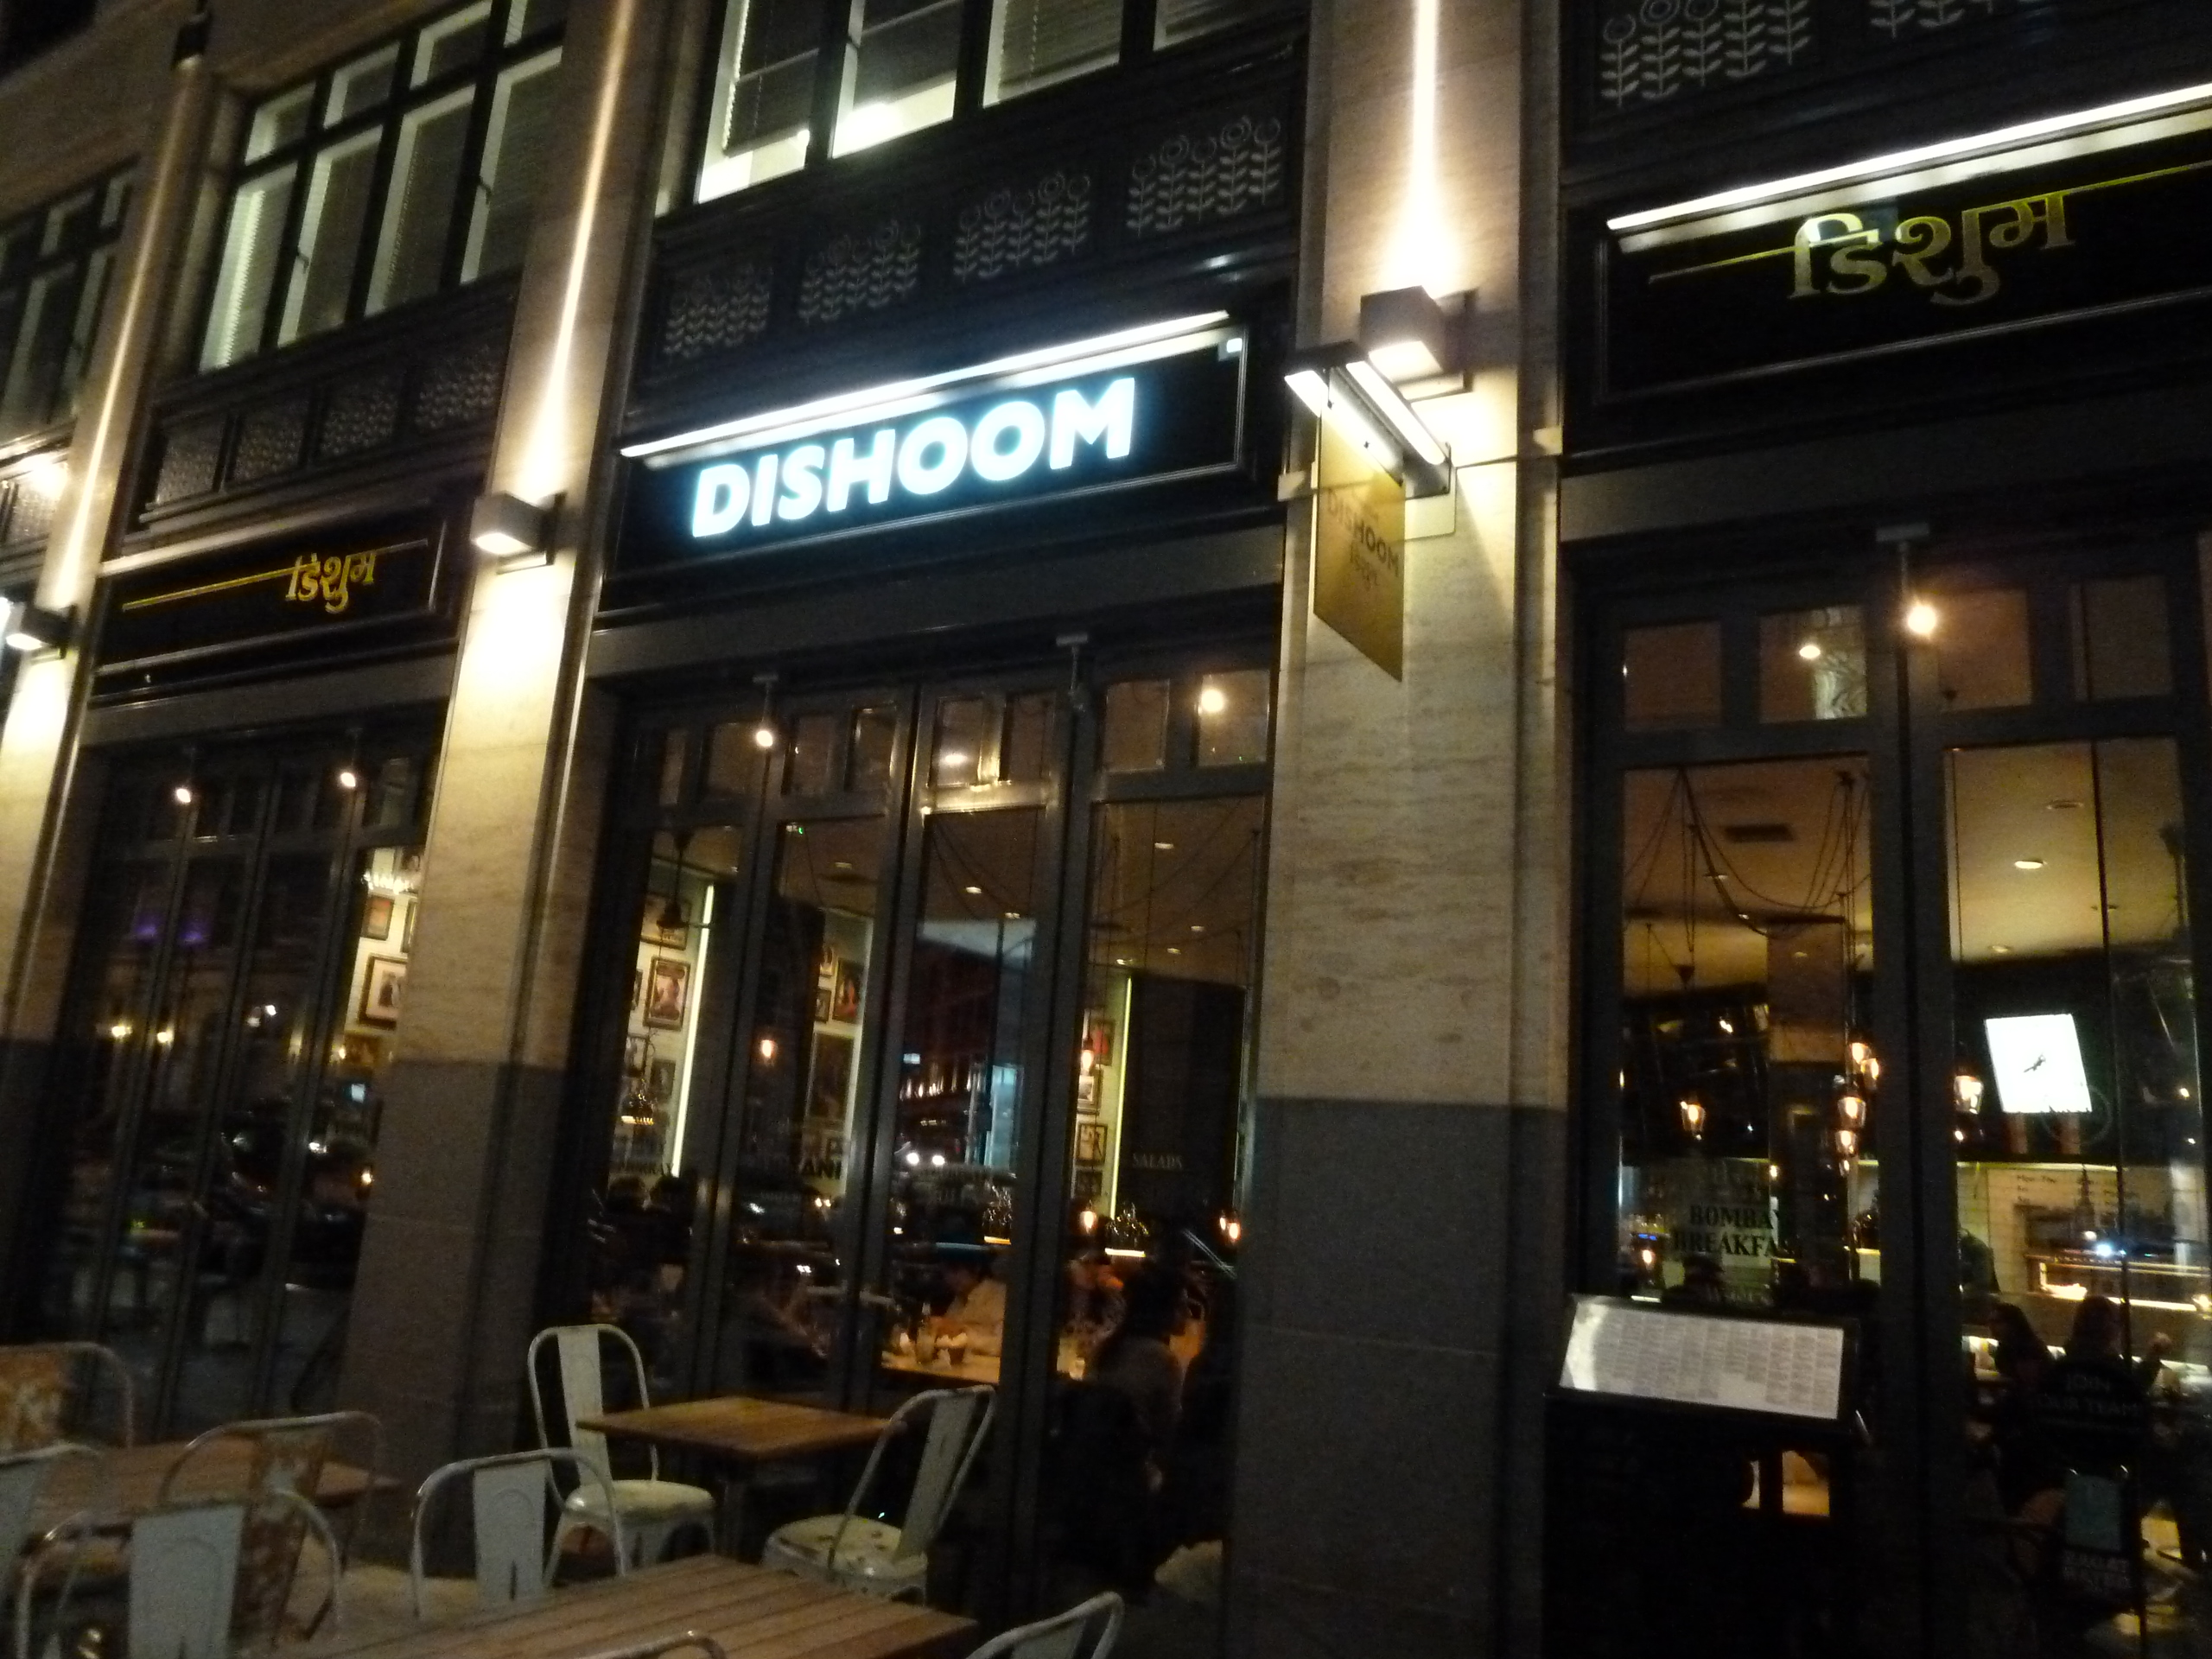 Everyone S Favourite Restaurant Dishoom Is Delivering In Central London Luxurylifestylejournal